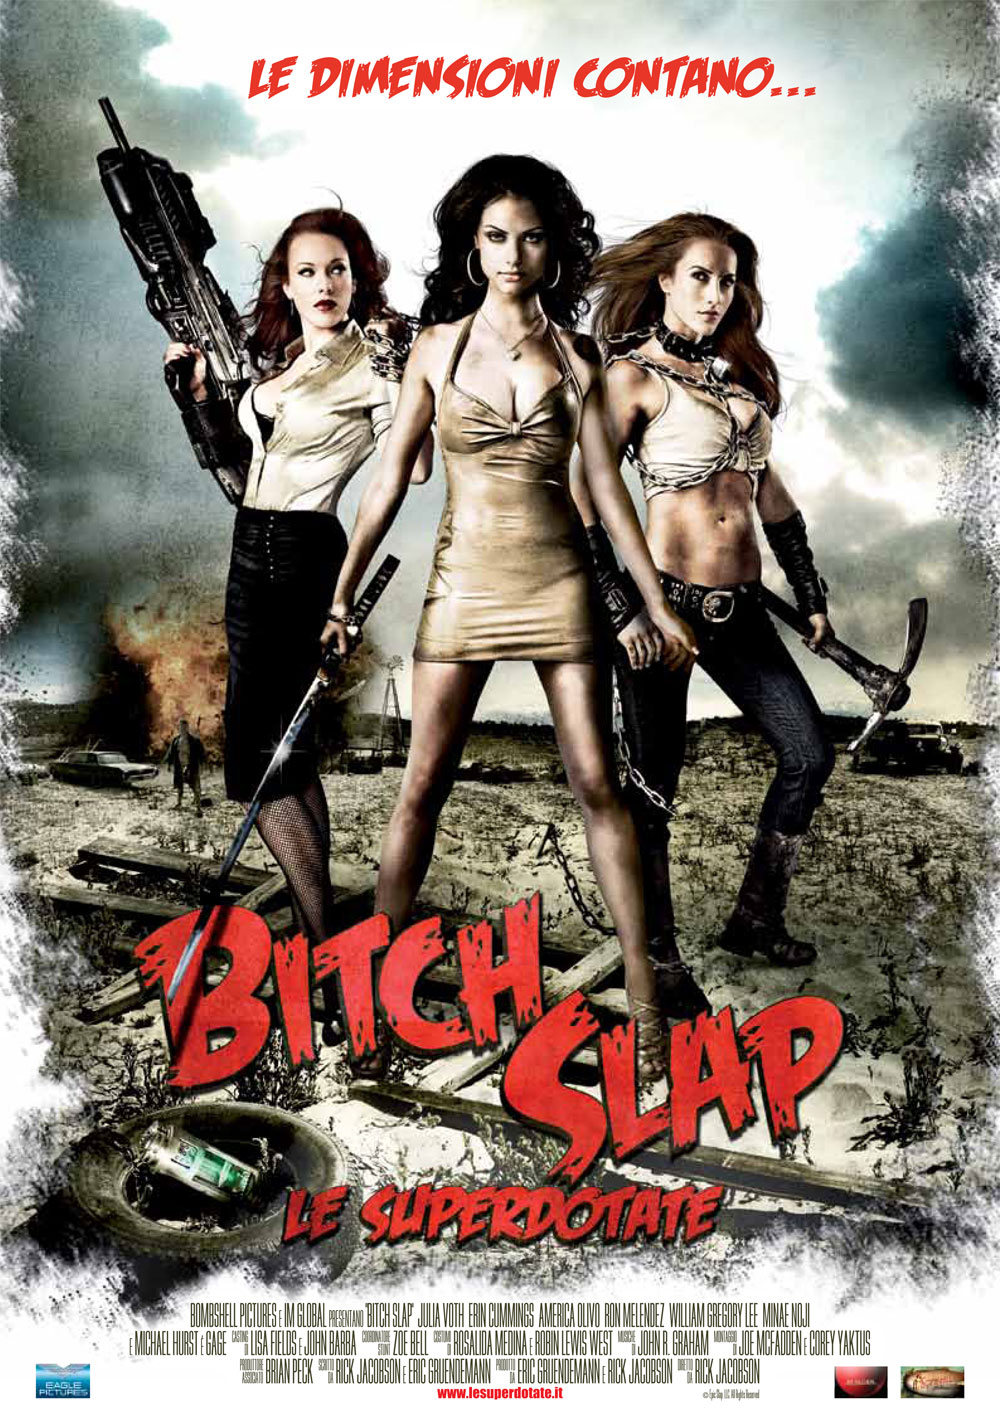 [RECENSIONE] Bitch Slap – Le Superdotate